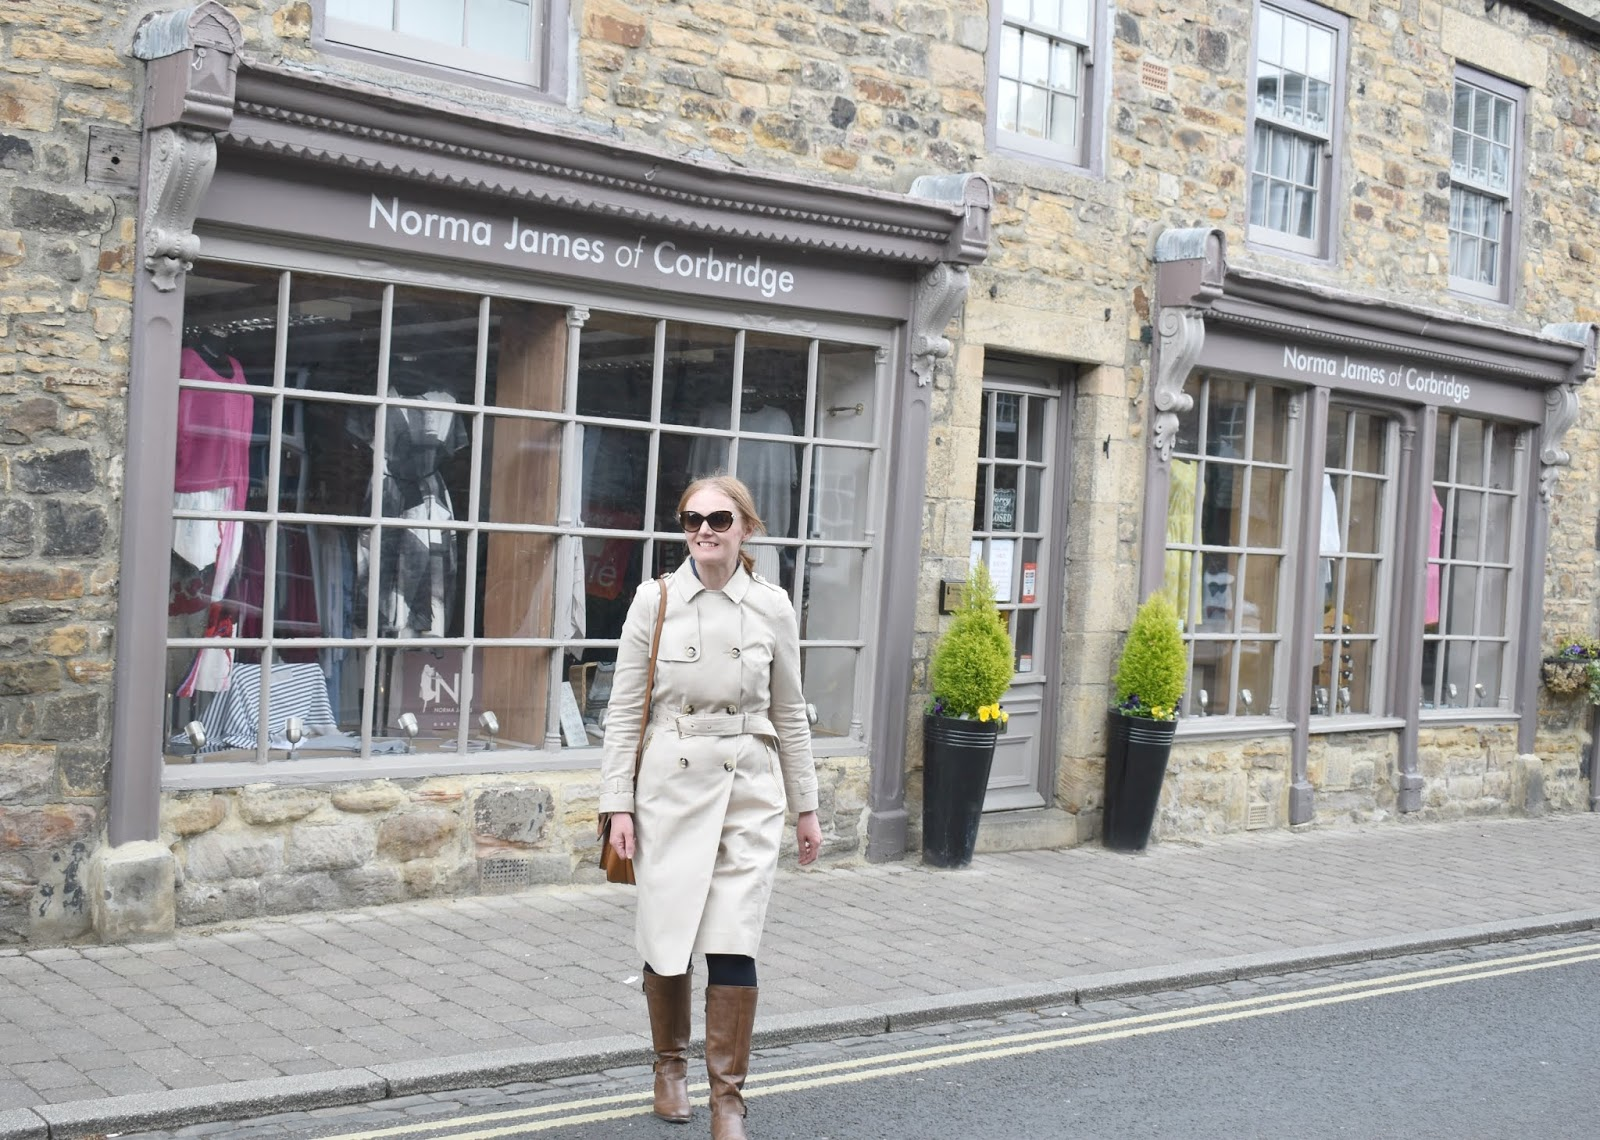 Day Trip to Corbridge - Shopping